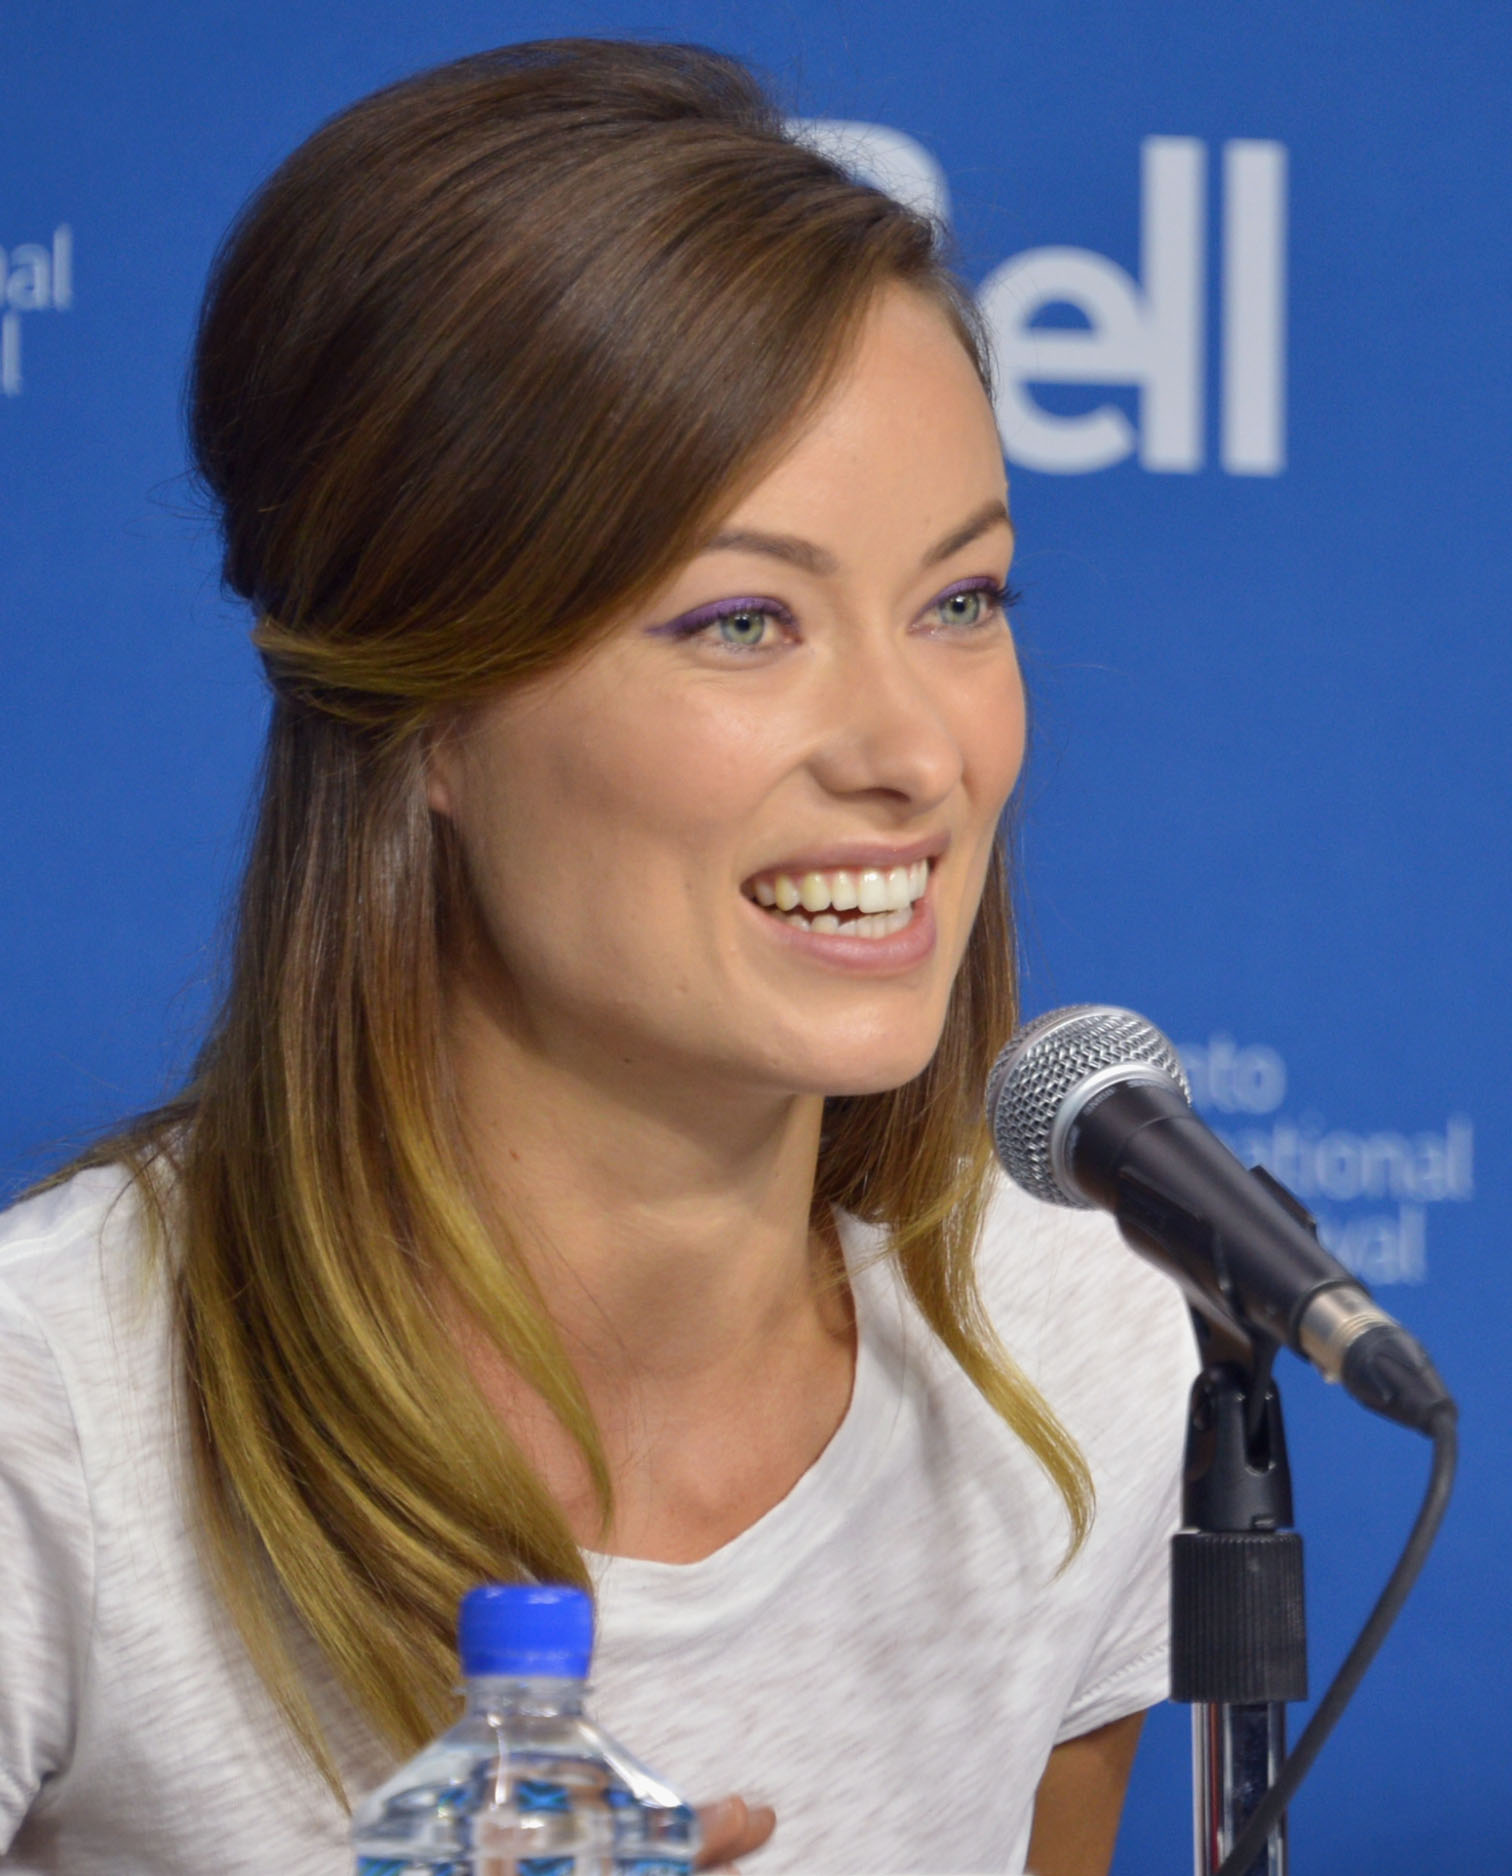 Olivia Wilde was all smiles at the Third Person press conference.